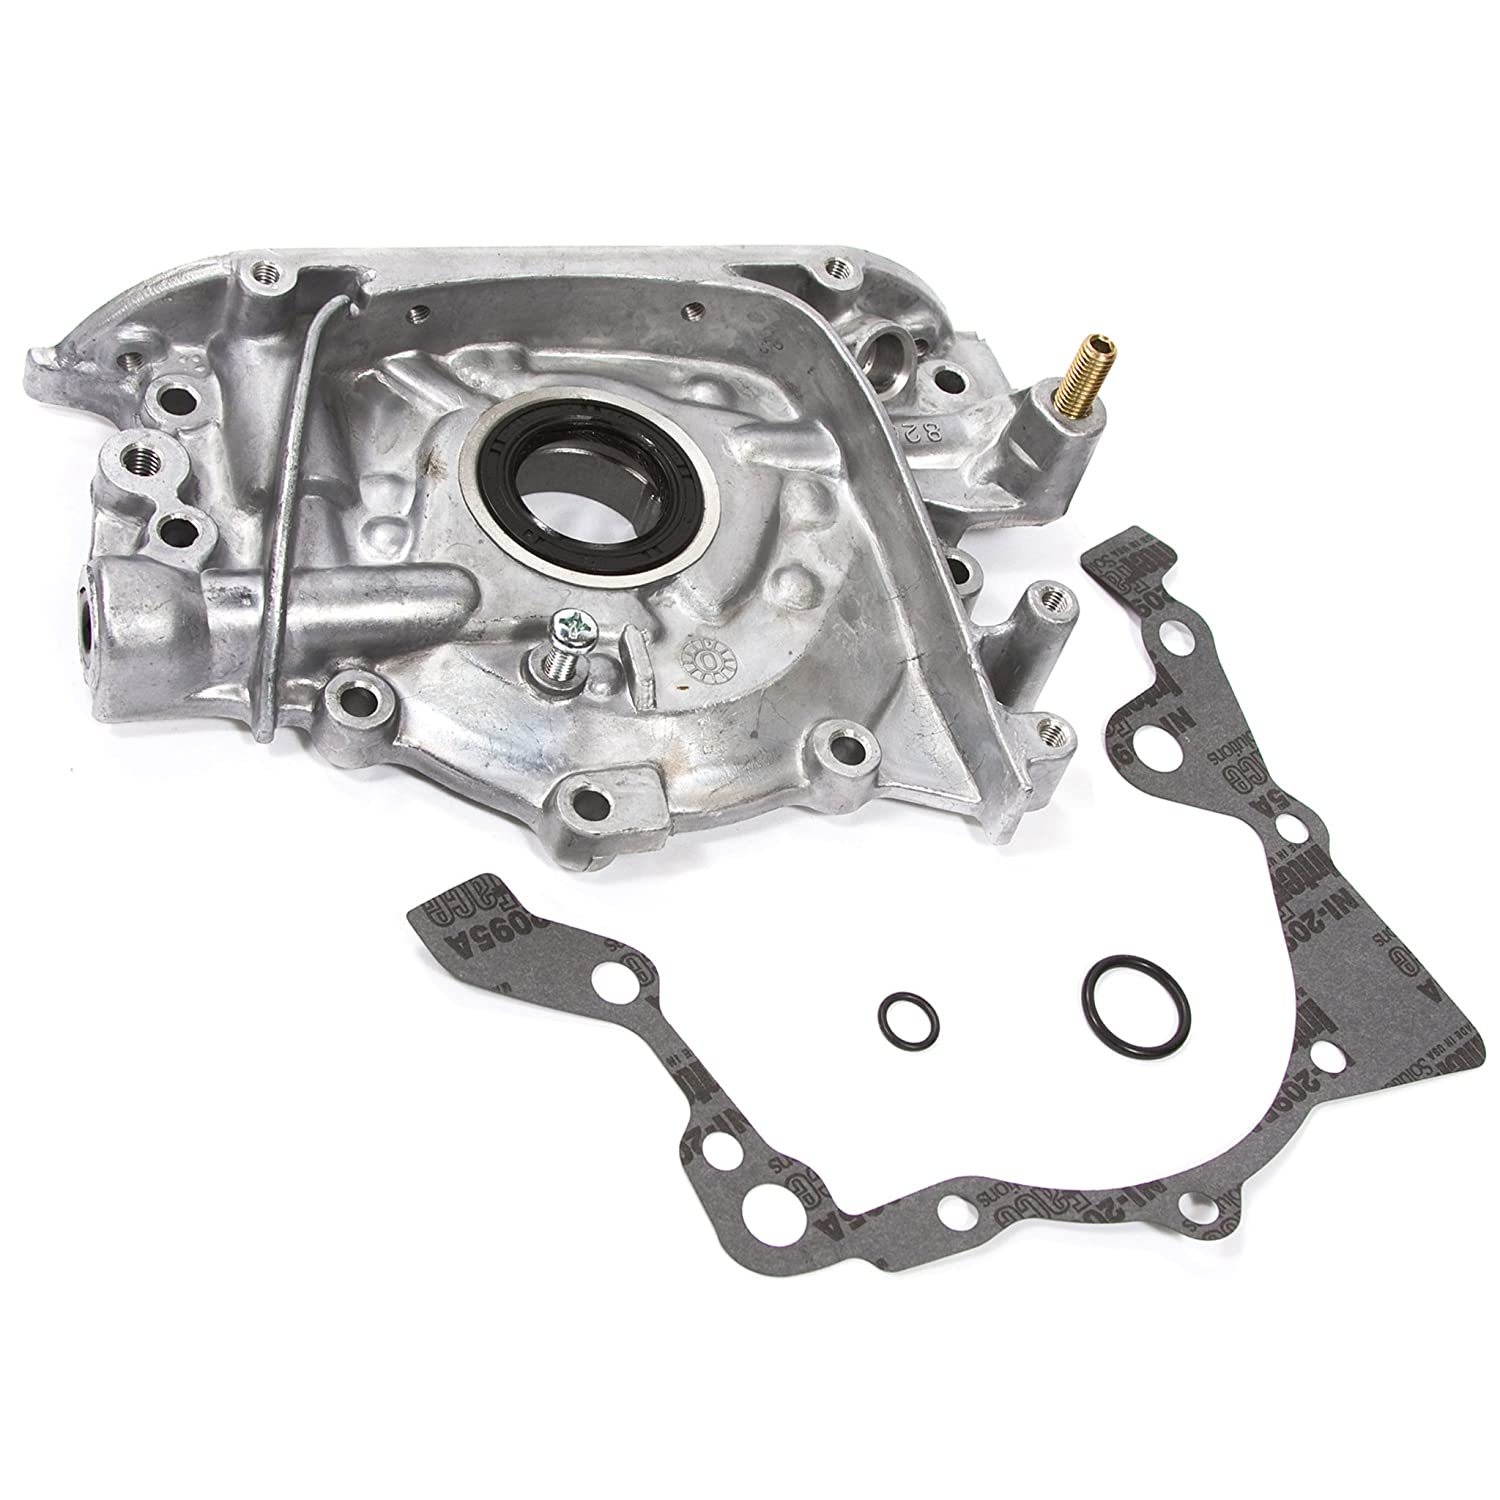 Amazon.com: Fits 86-95 Chevrolet Geo Suzuki 1.0 1.3 SOHC Oil Pump: Automotive